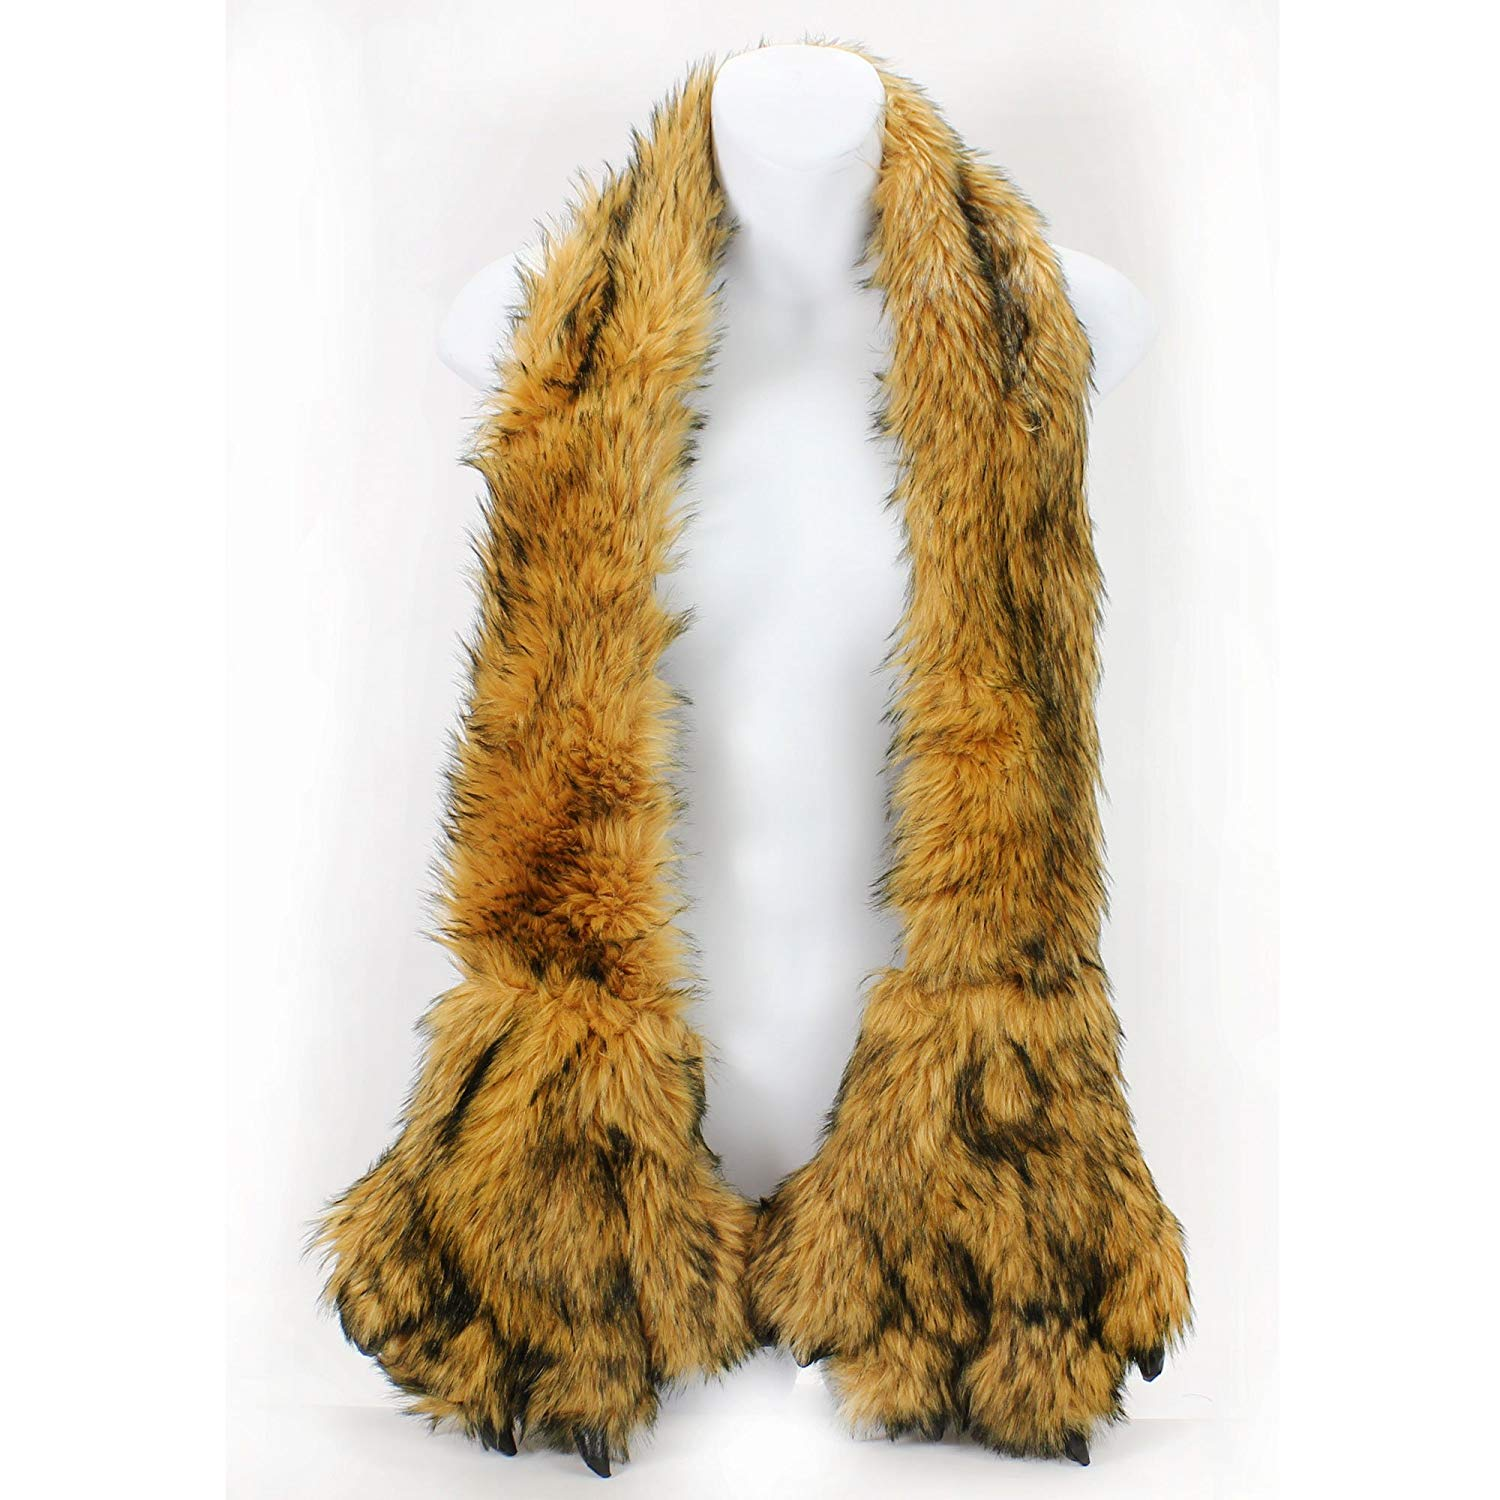 AN Fun Winter Accessory Fleece Lined Furry Faux Fur Scarf Animal Claws Paws Pockets Mitten (Brown)